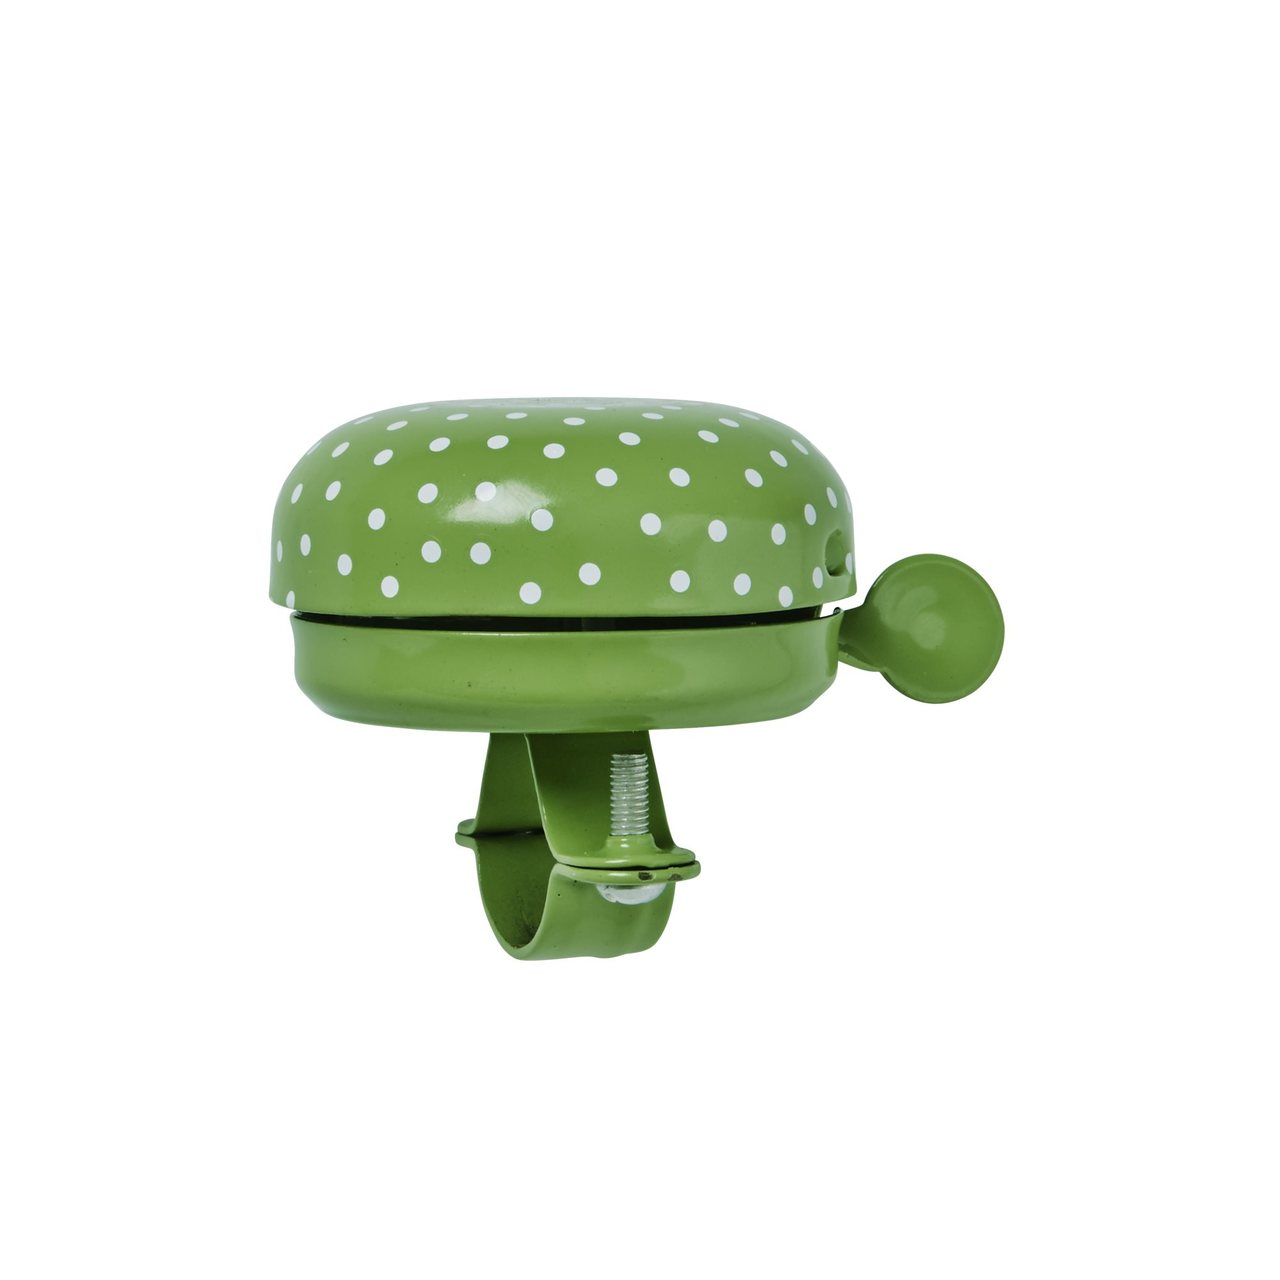 Bike Bell, Green with white dots